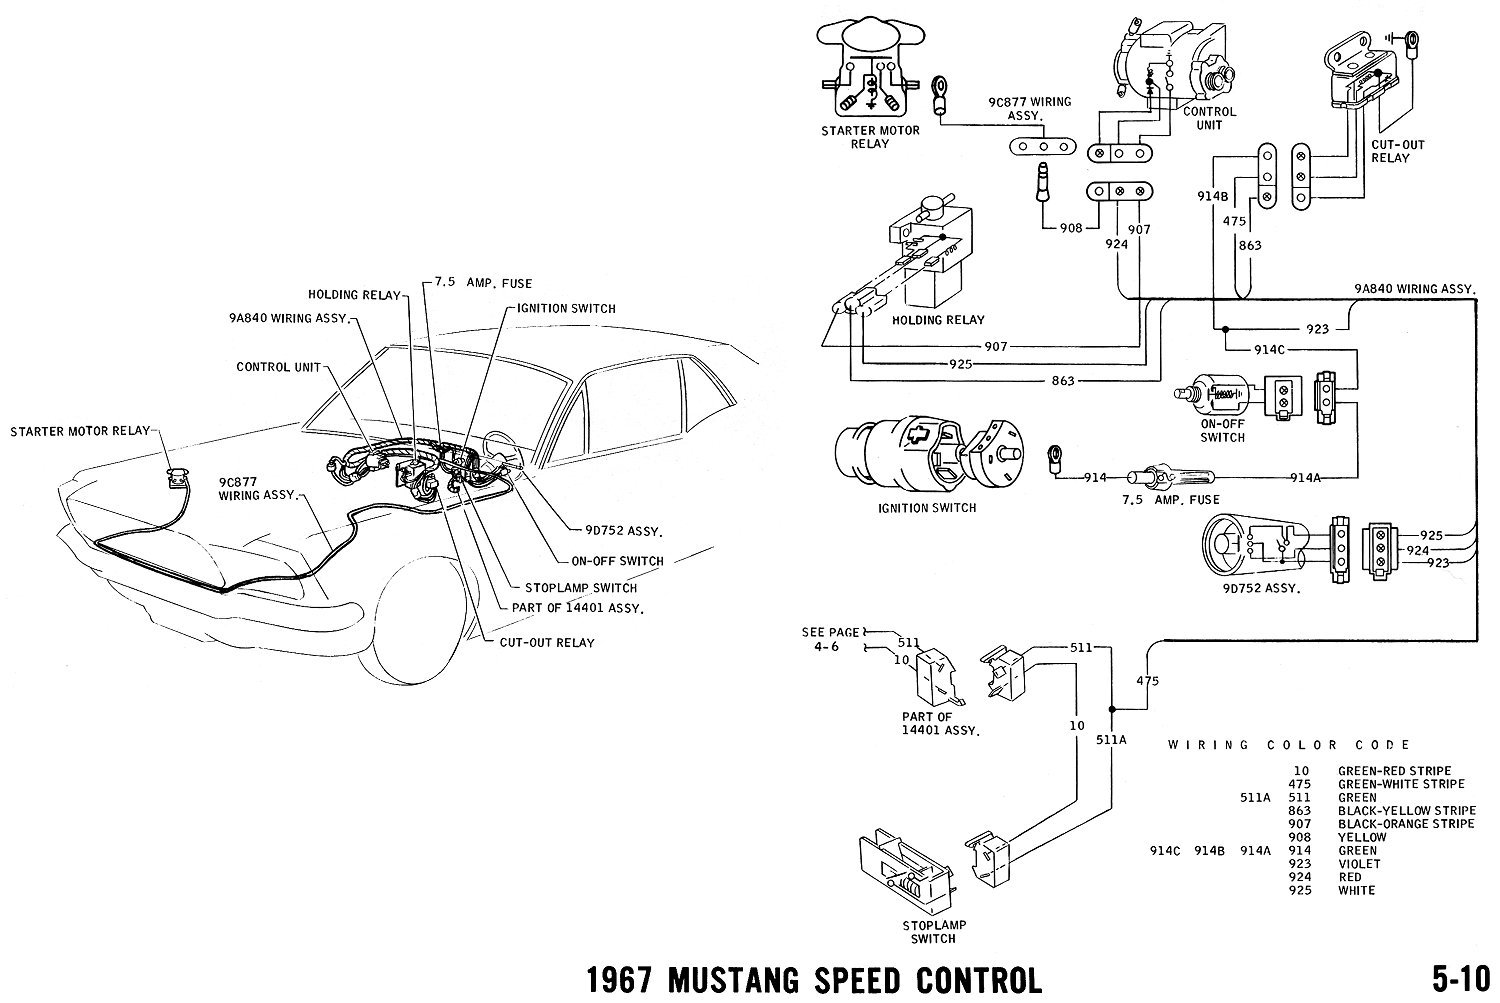 1967 Mustang Wiring And Vacuum Diagrams Average Joe Restoration Blower Fan Diagram For Light Pictorial Schematic